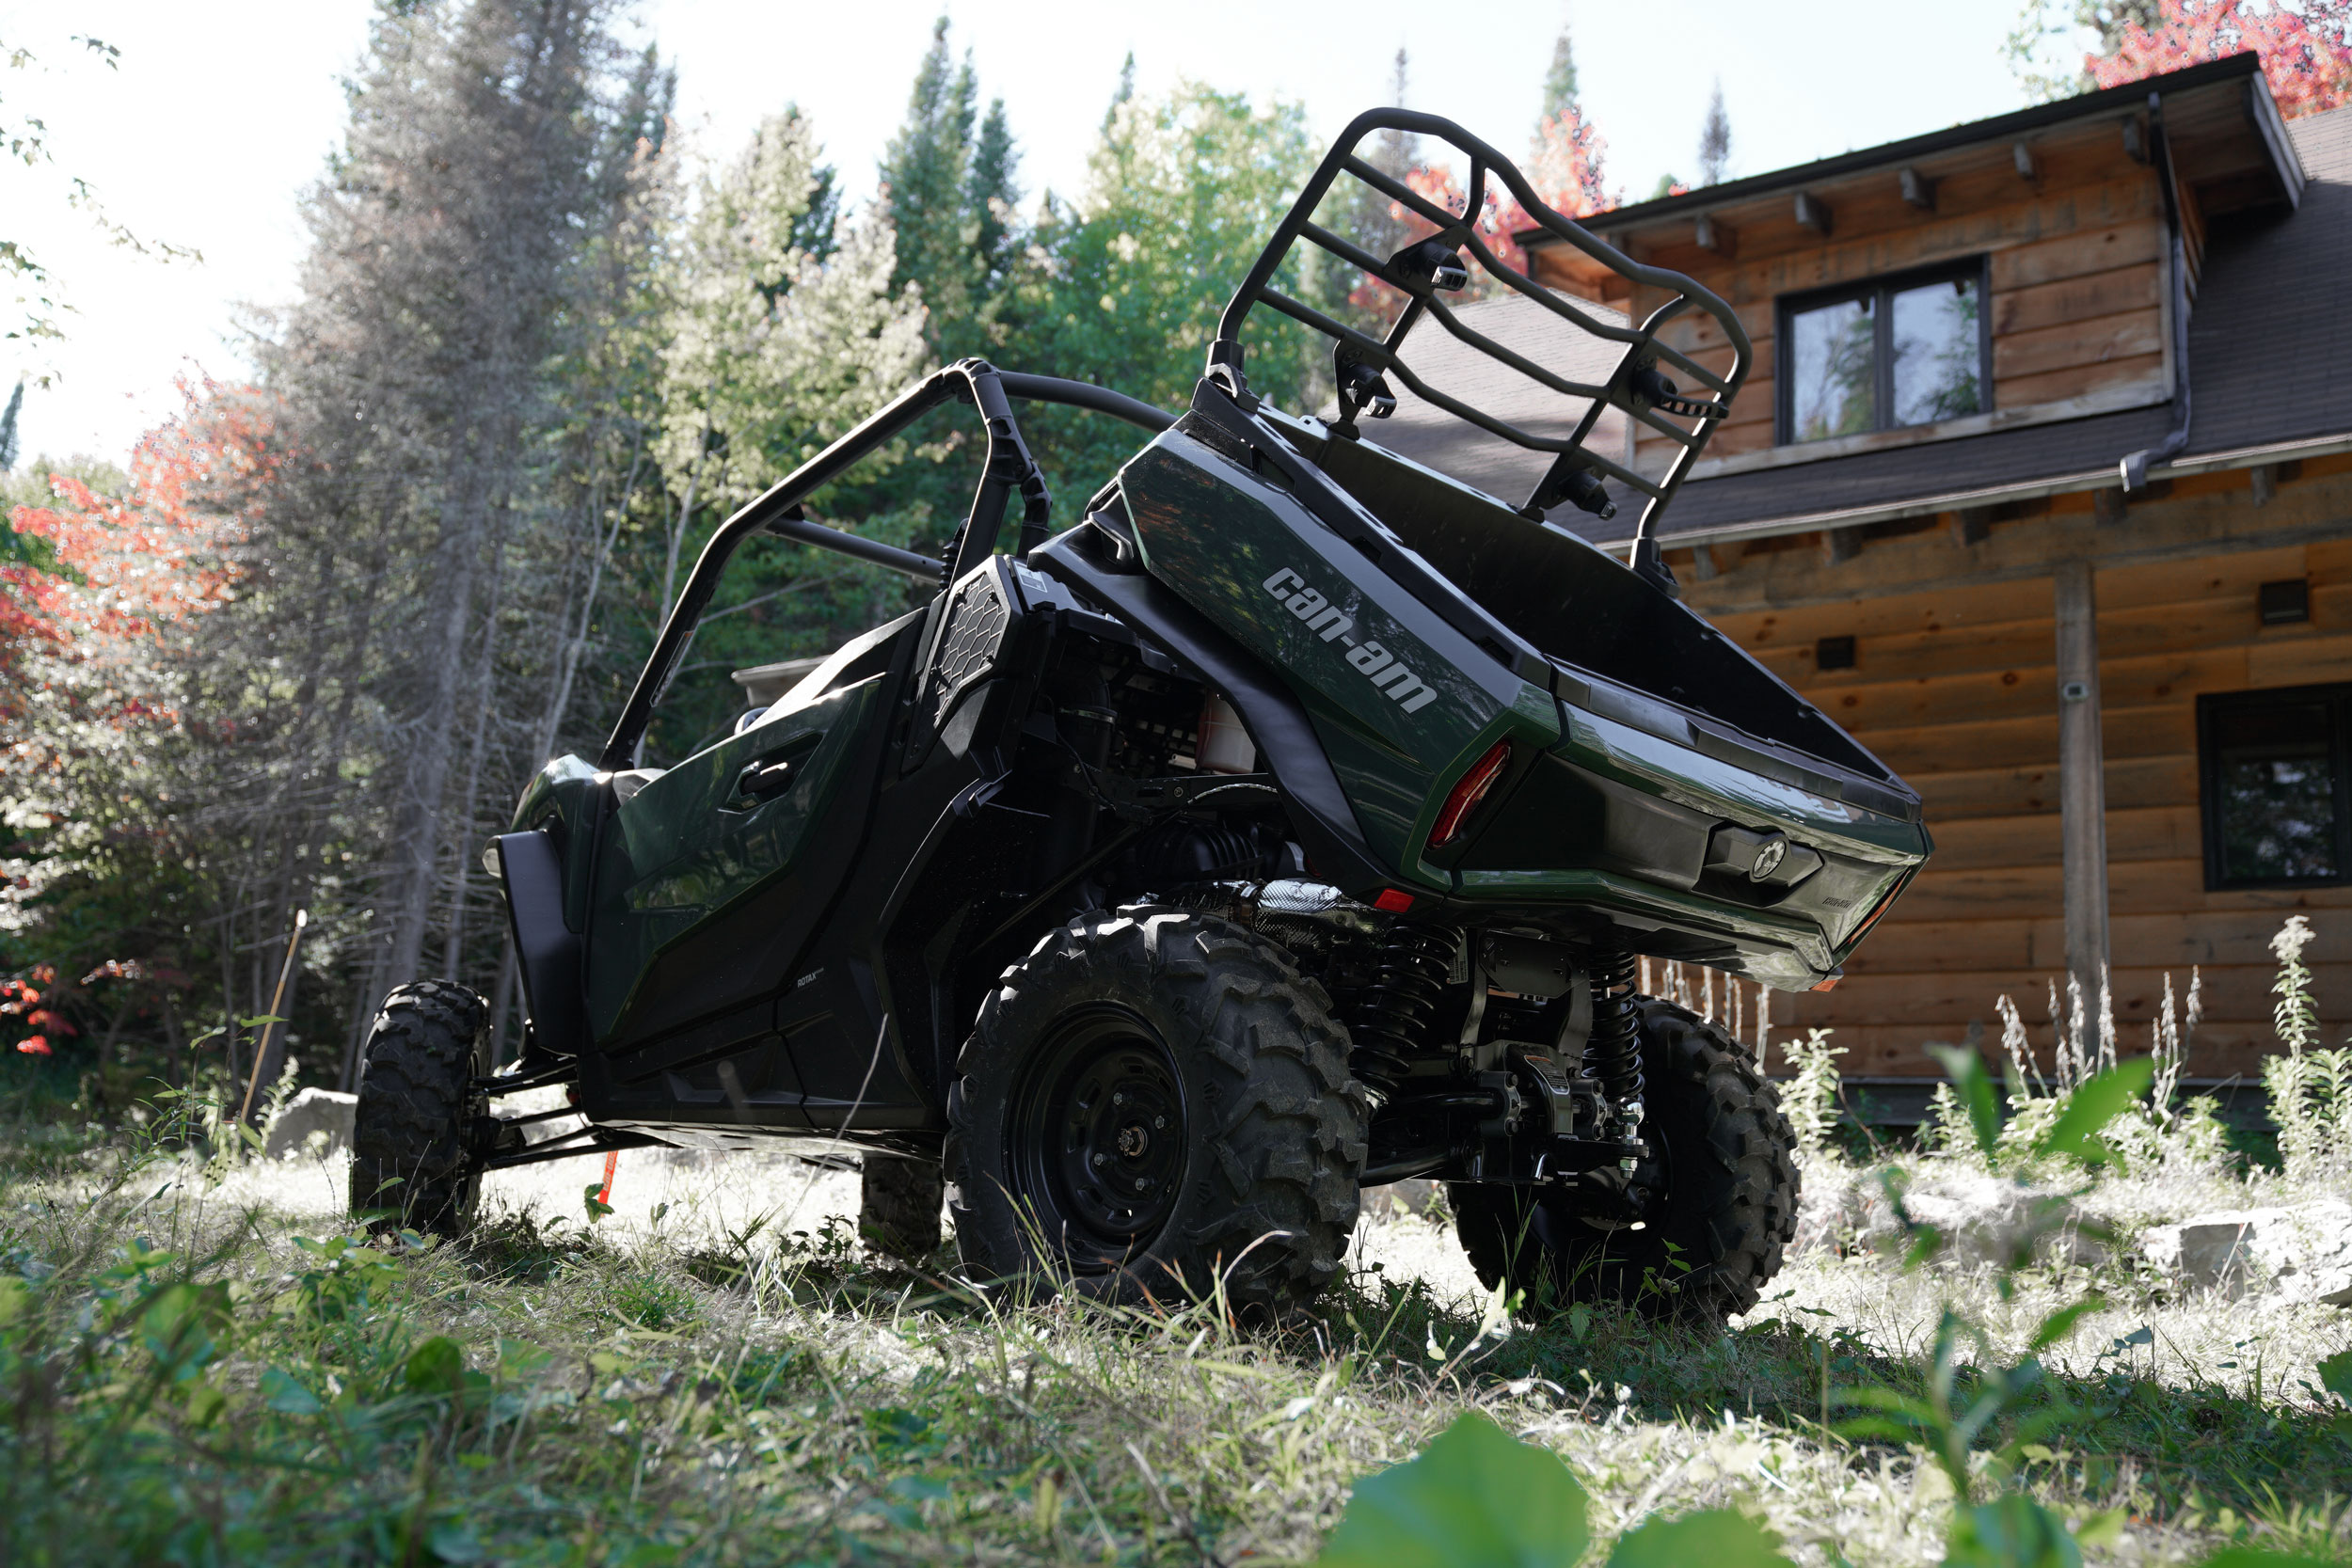 A 2021 Can-Am Commander with a tilt bed near a wooden chalet